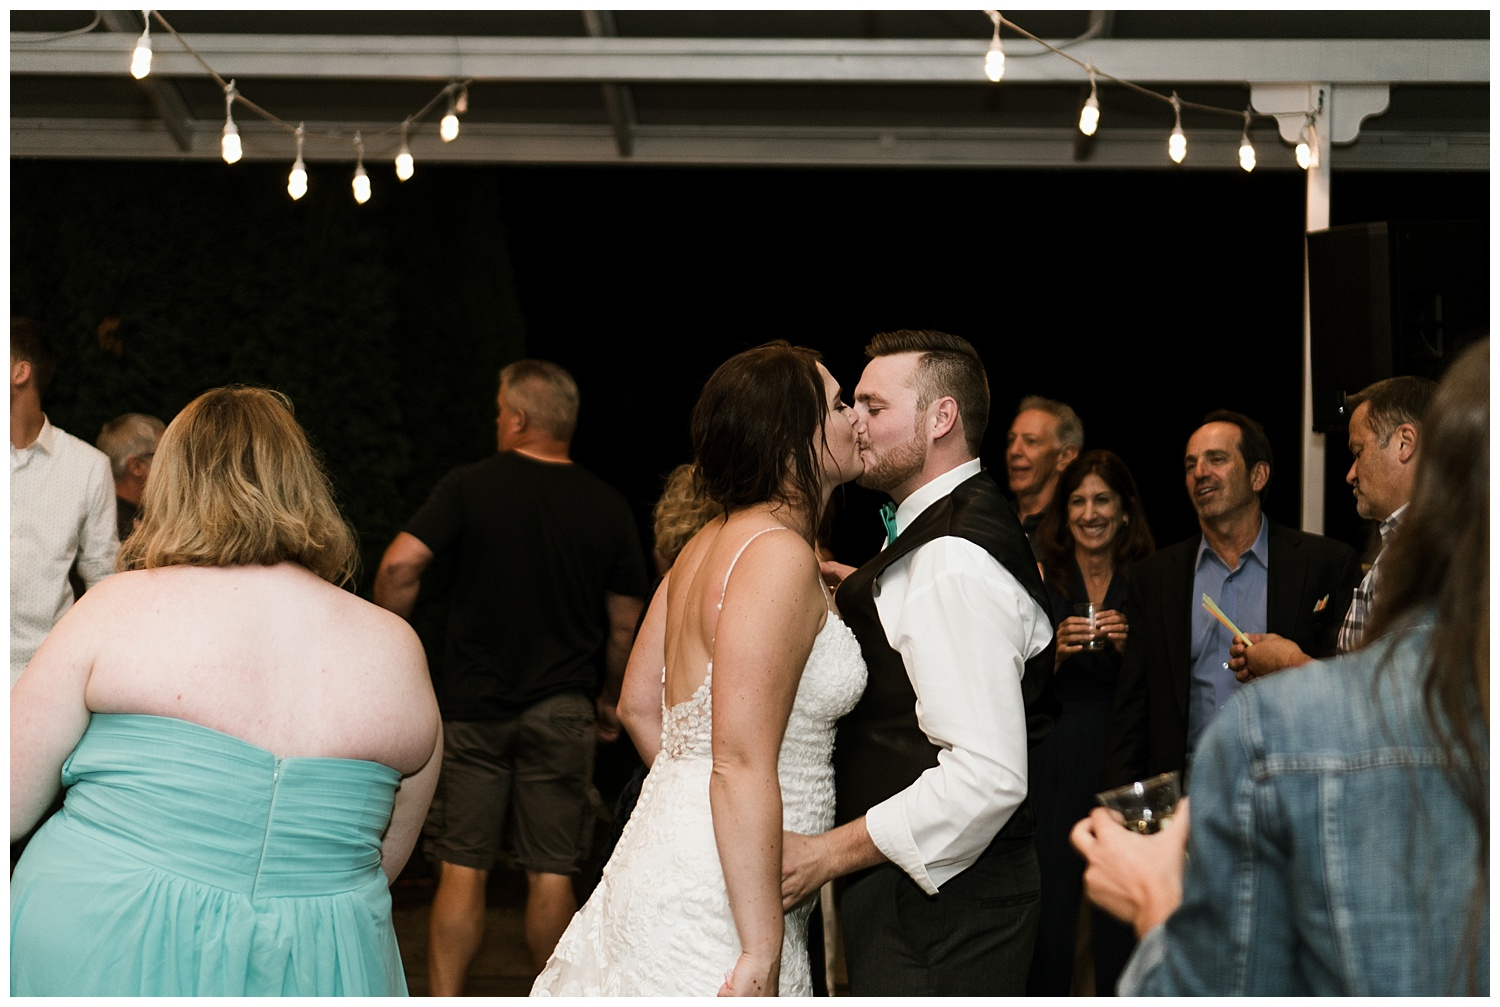 Rustic Chic Wedding | wedding day reception events | PNW wedding photographer